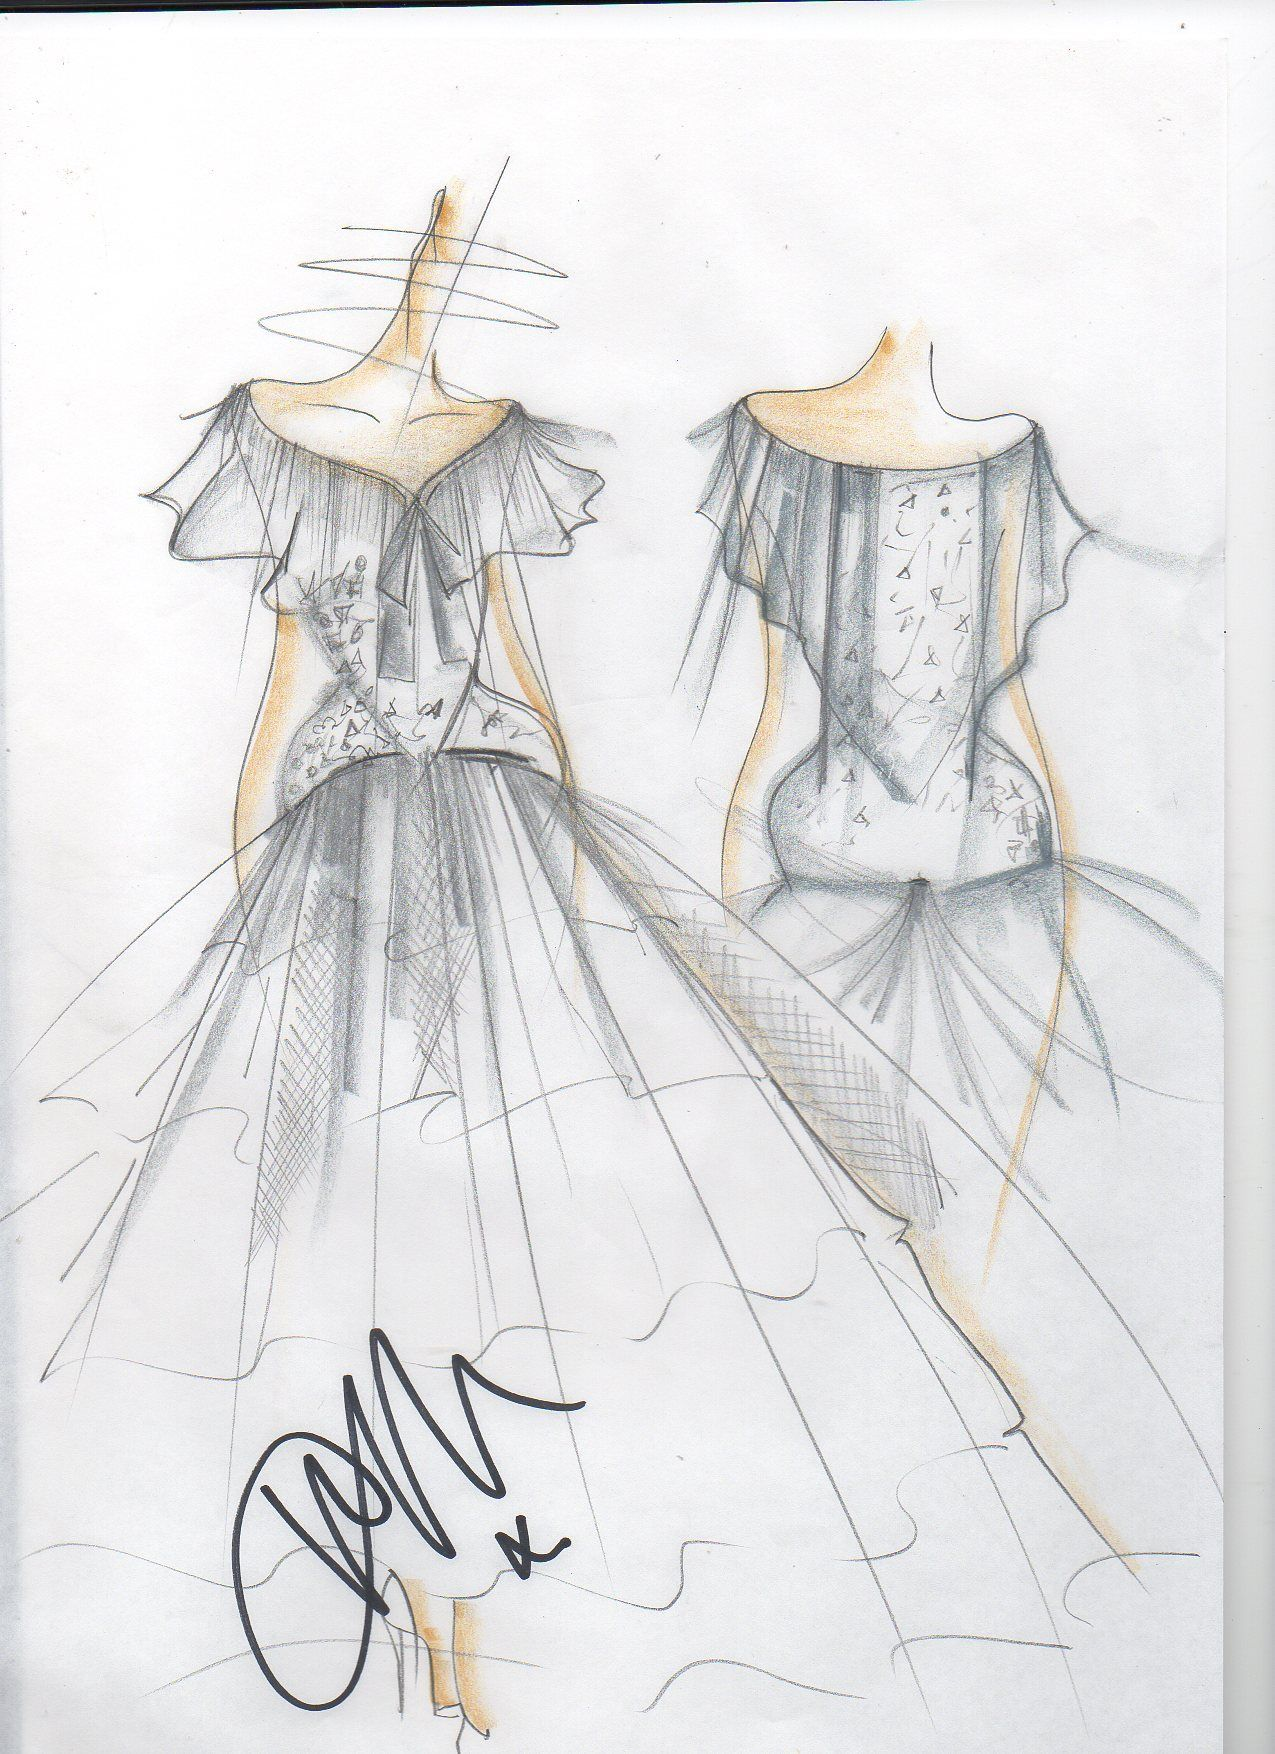 Strictly Come Dancing Costume Designs By Vicky Gill Vicky Gill Is A Costume Designer On Strictly Come Dancing The Dress Sketches Dance Costumes Sketches